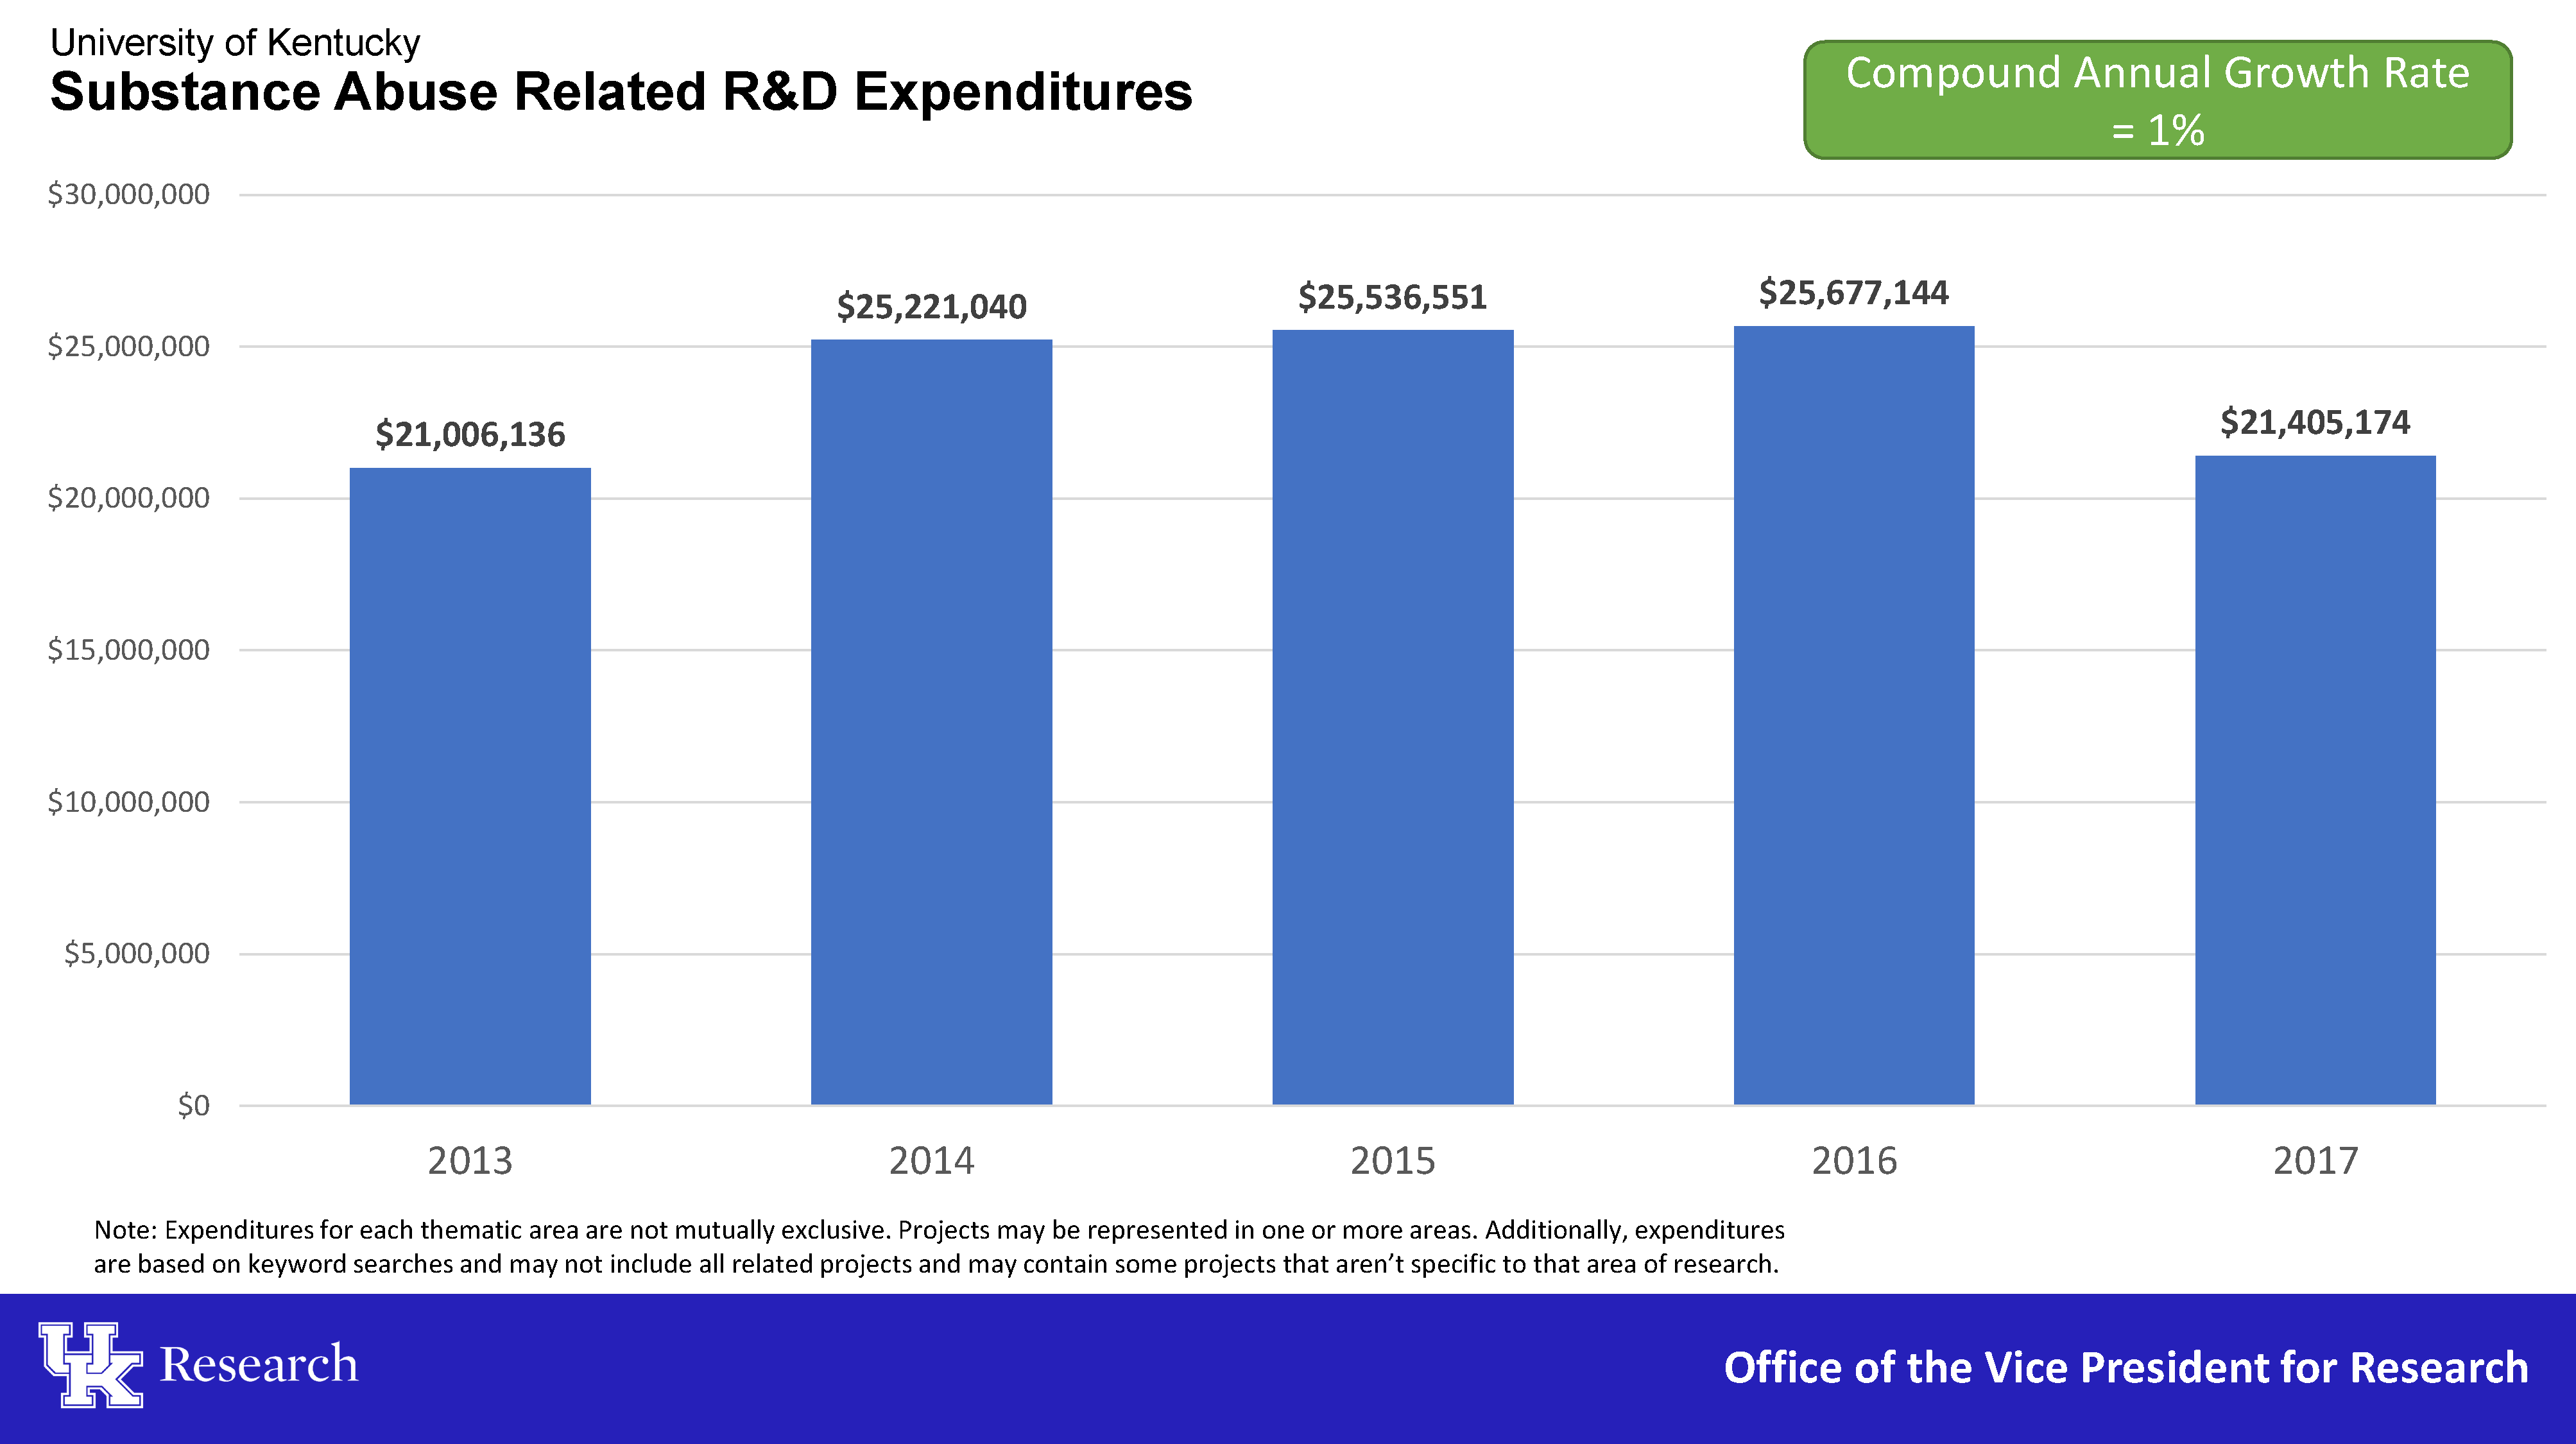 Substance Abuse Related R&D Expenditures 2013-2017